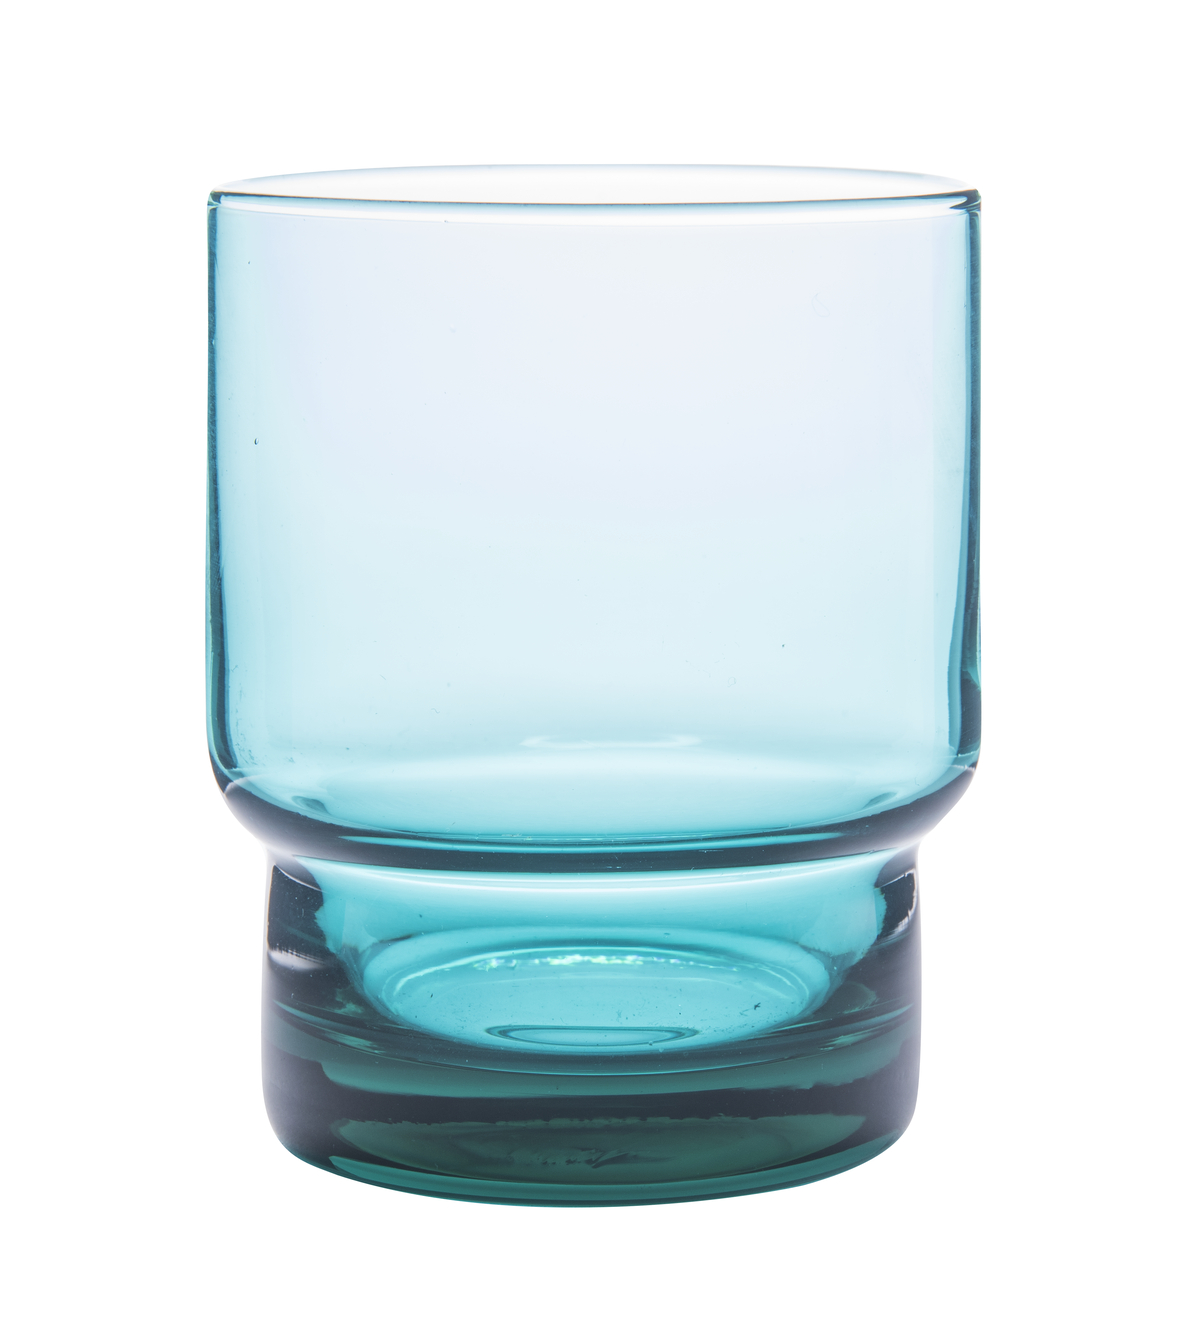 Gobelet forme basse turquoise 22 cl Artic Essentials Glassware